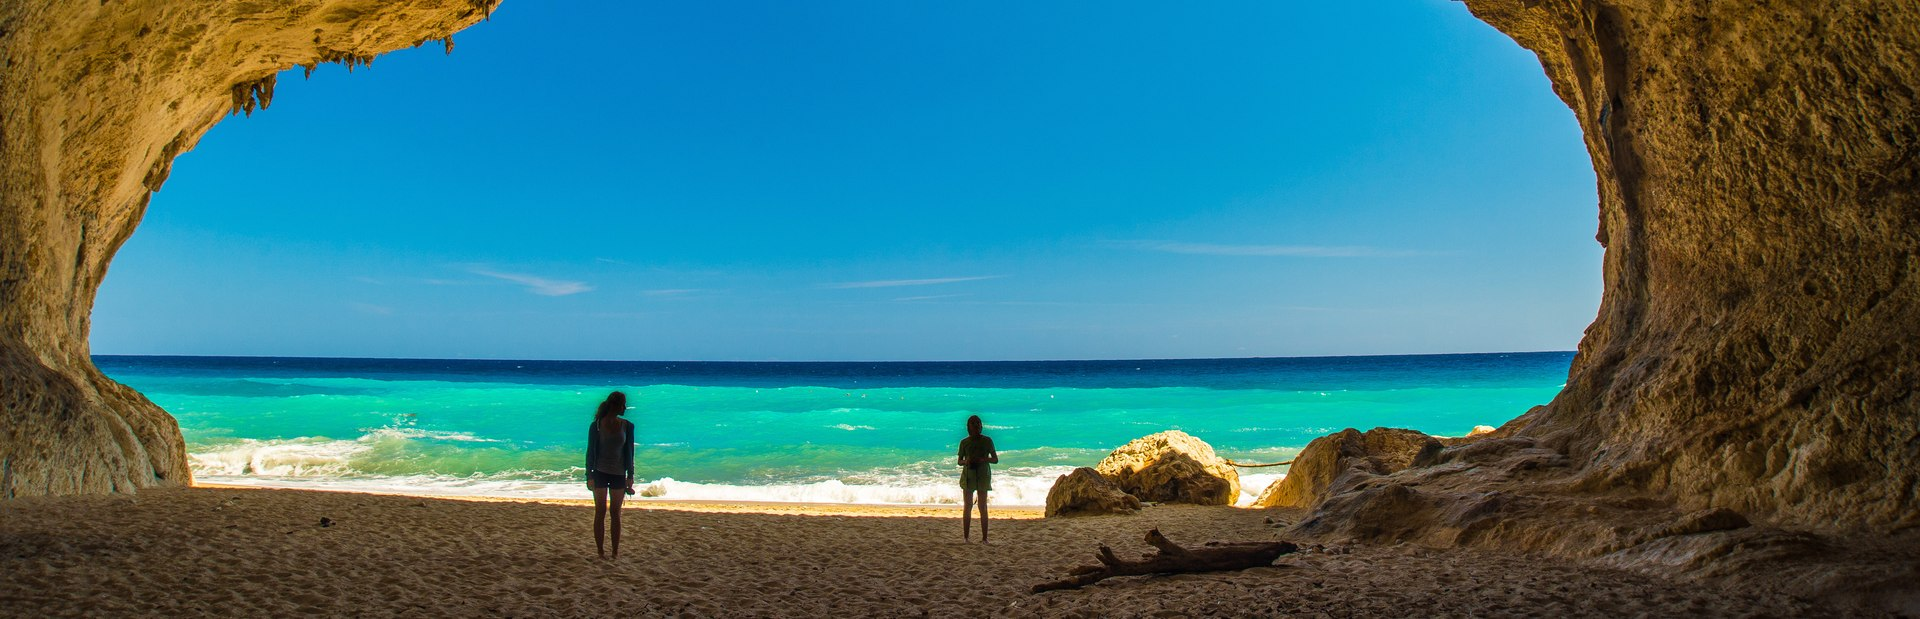 Things to see & do in the West Mediterranean